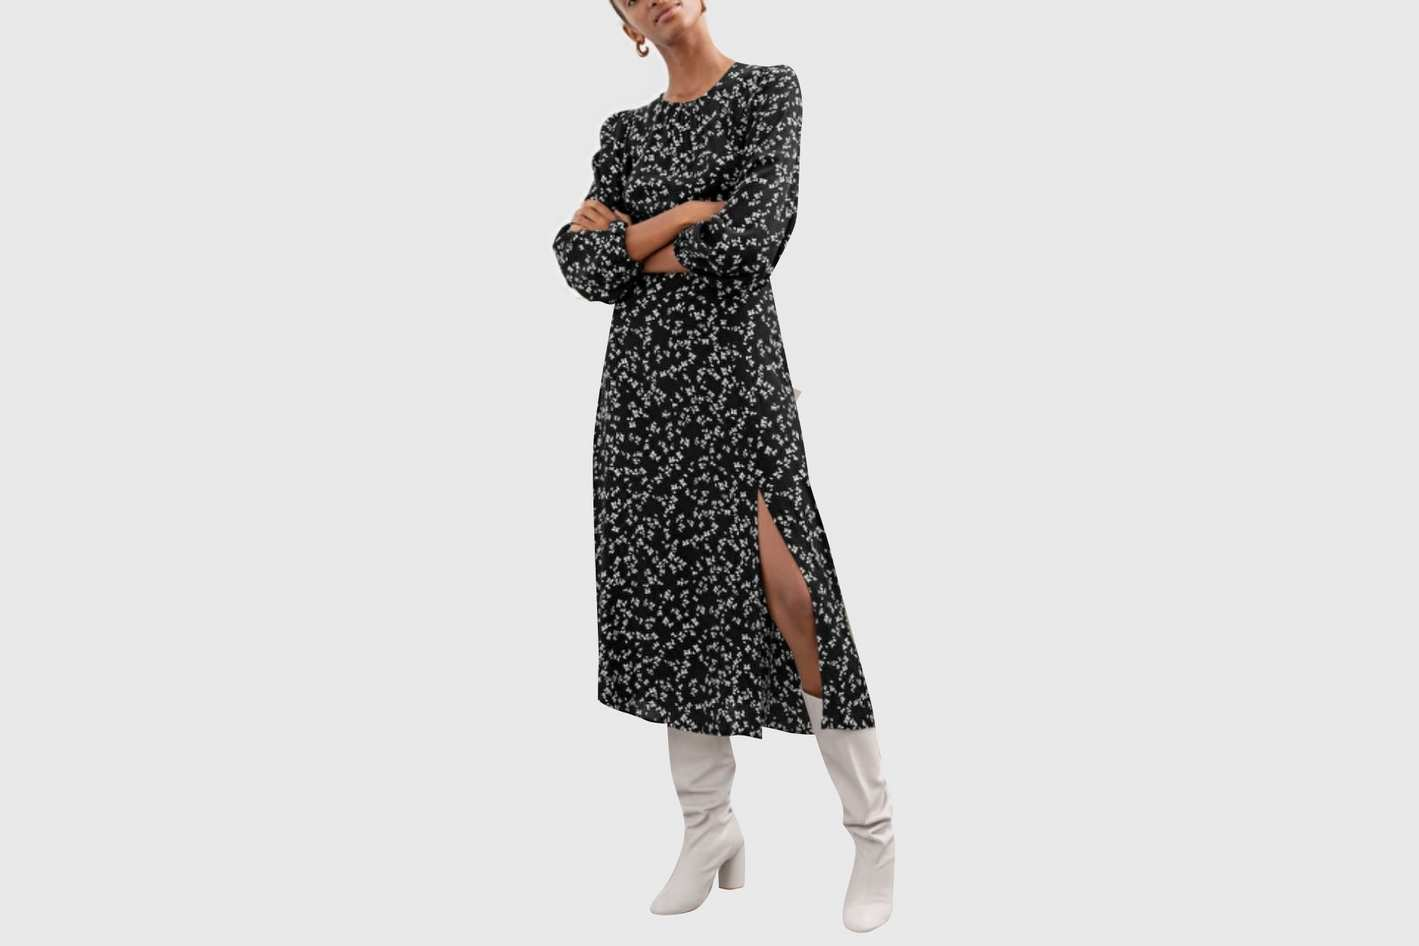 & Other Stories Floral Long Sleeve Midi Dress